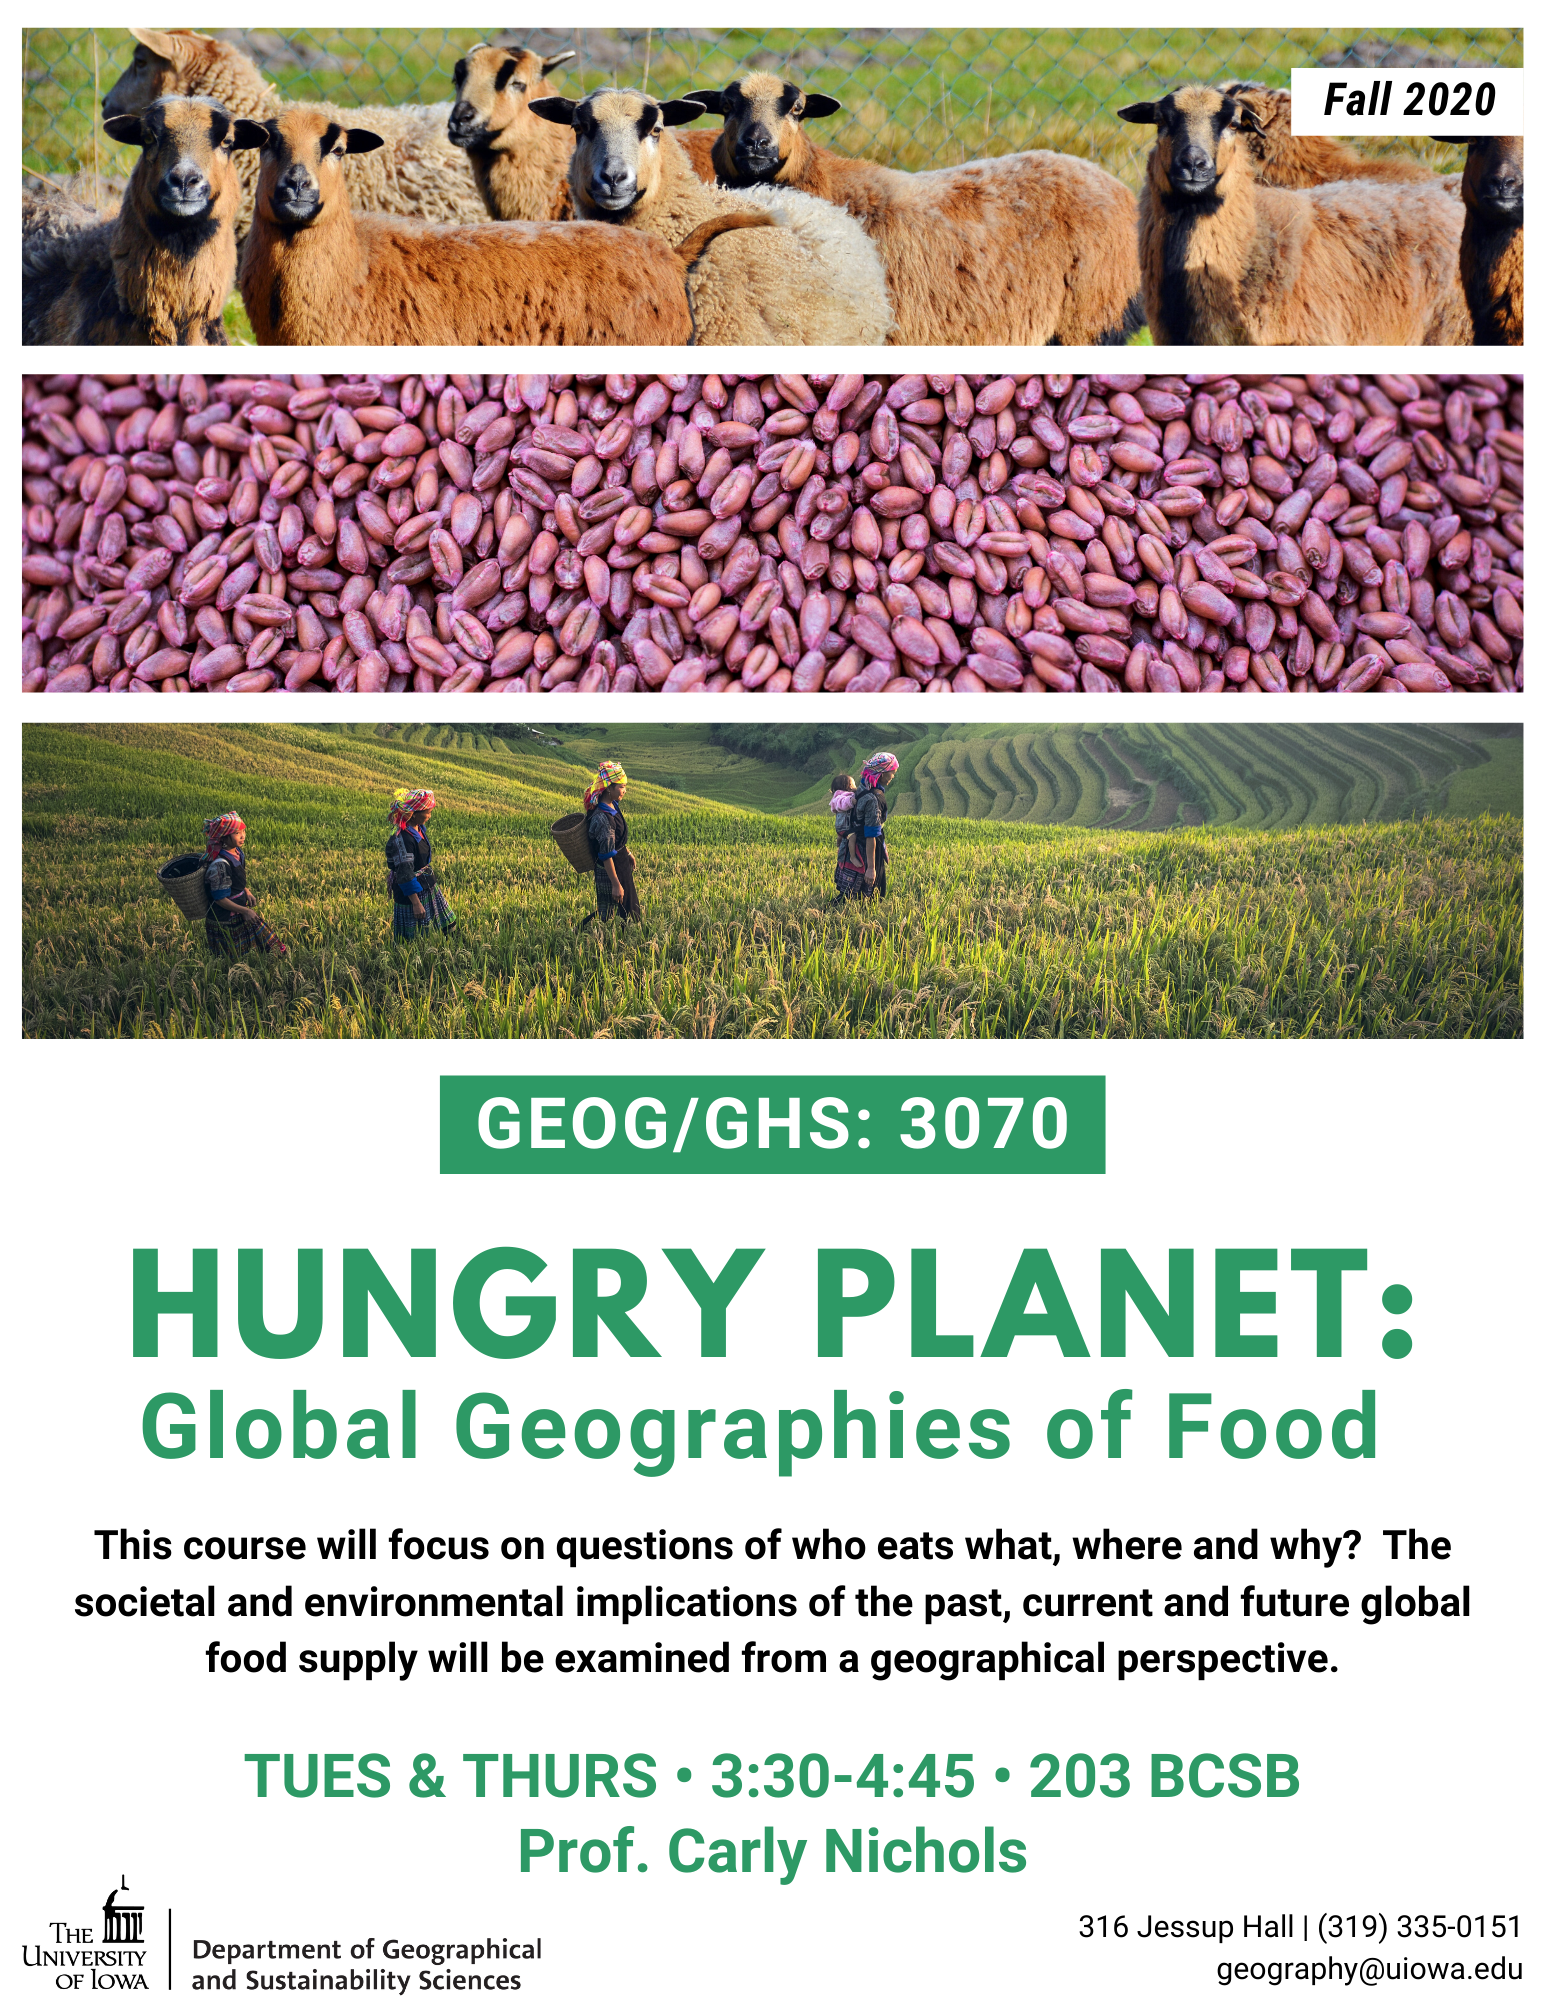 global geographies of food